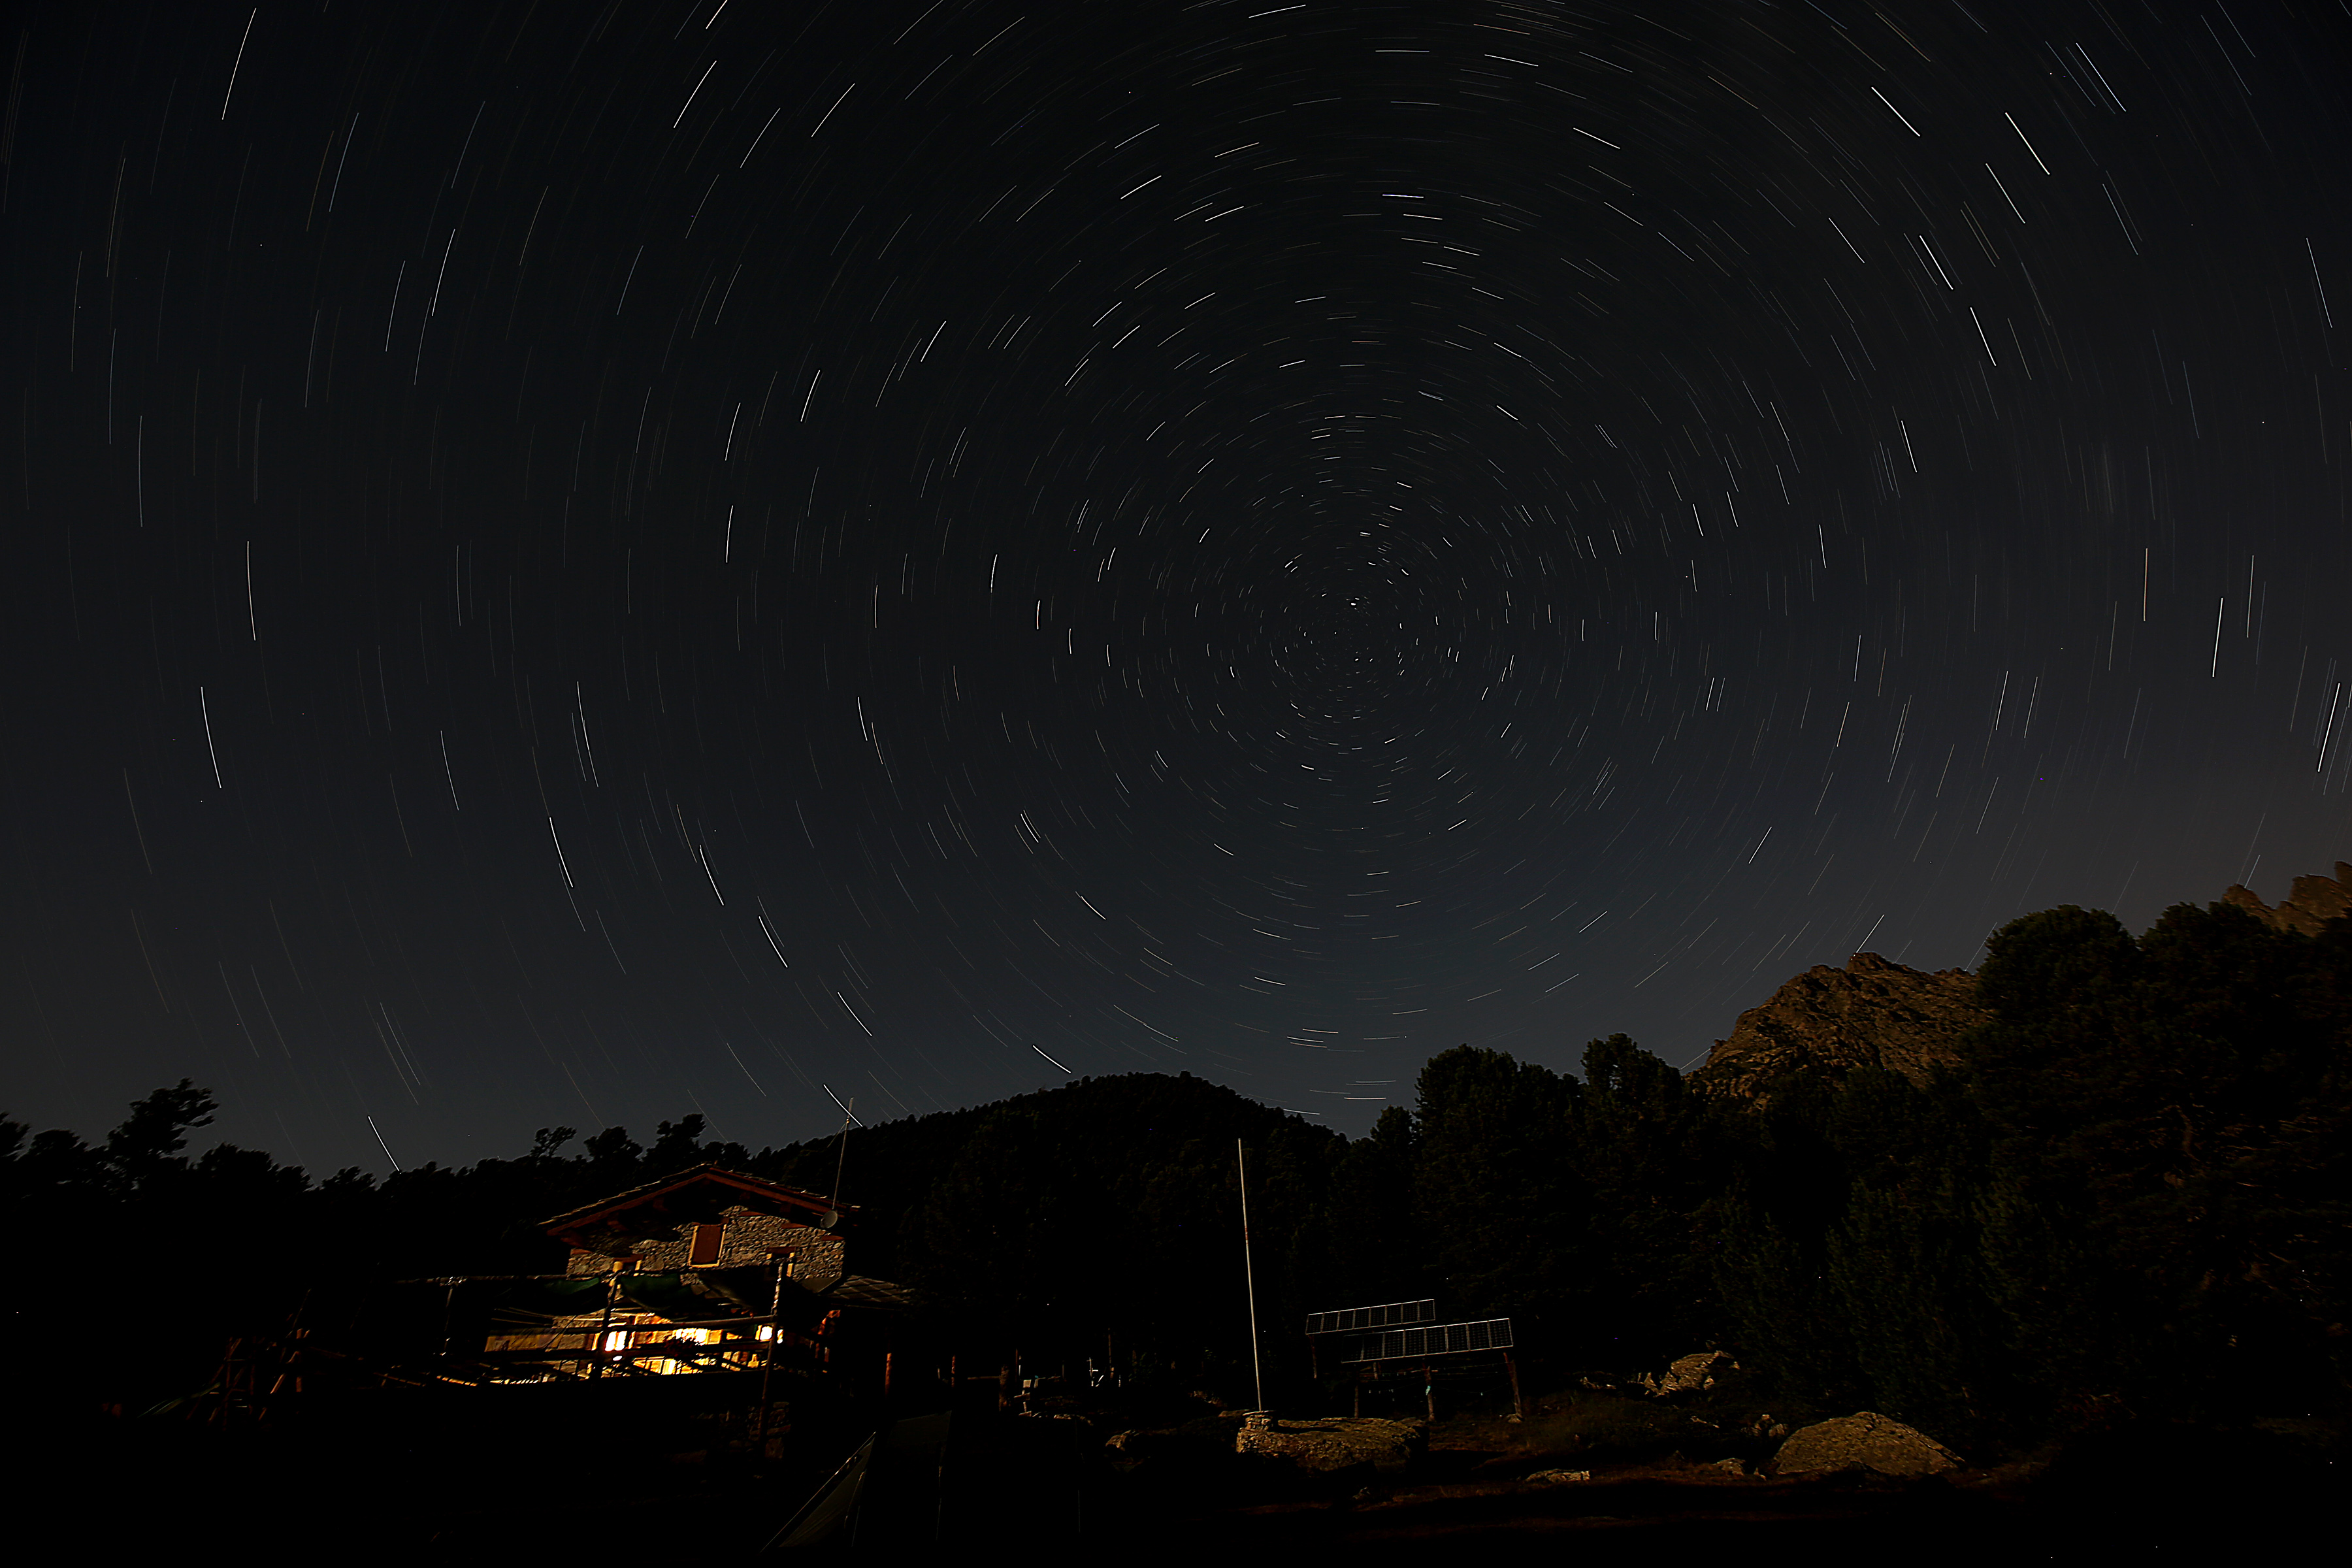 The Bagnour alpine refuge is seen at night during the annual Perseid meteor shower in the Aleve wood in Pontechianale, near Cuneo, in the Monte viso Alps, northern Italy, on Aug. 13, 2016.